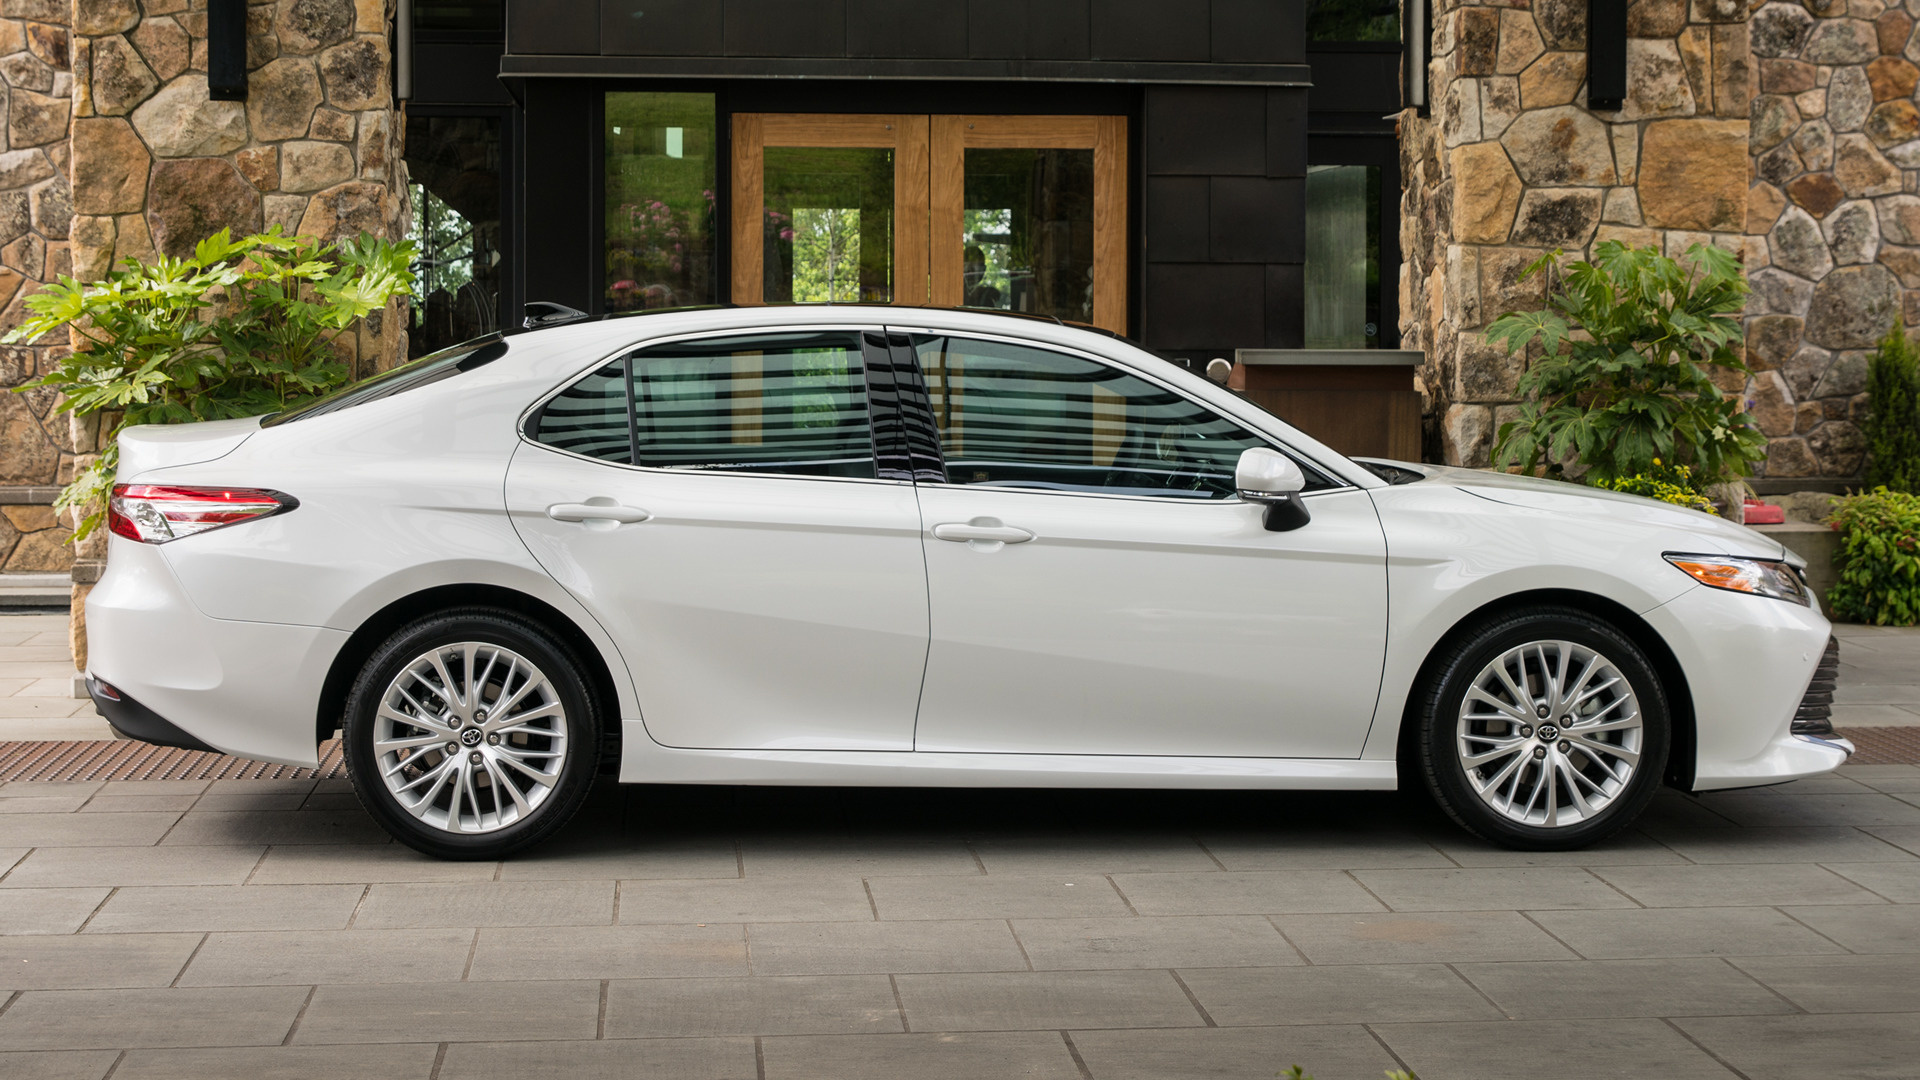 Toyota Camry XLE (2018) Wallpapers and HD Images - Car Pixel